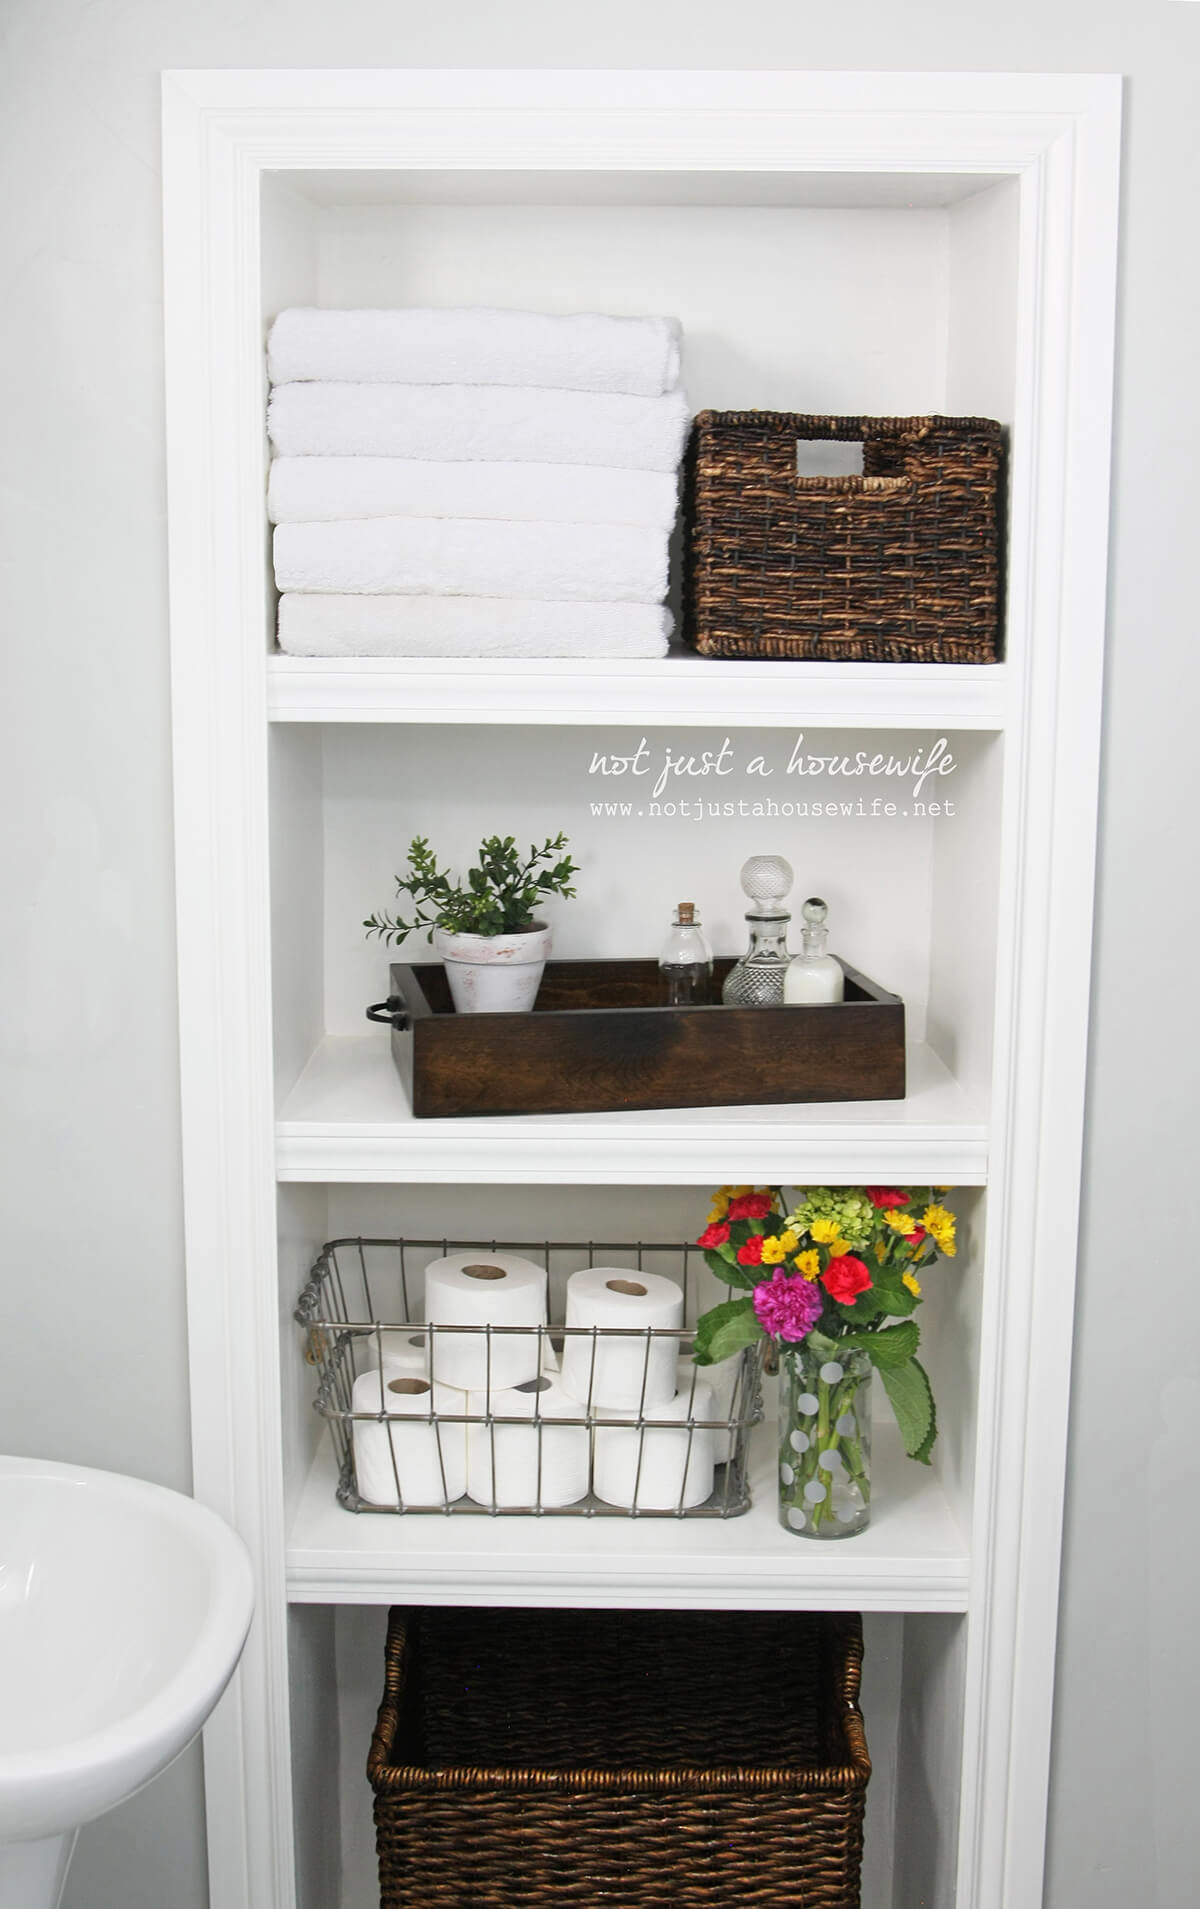 60+ Best Small Bathroom Storage Ideas and Tips for 2020